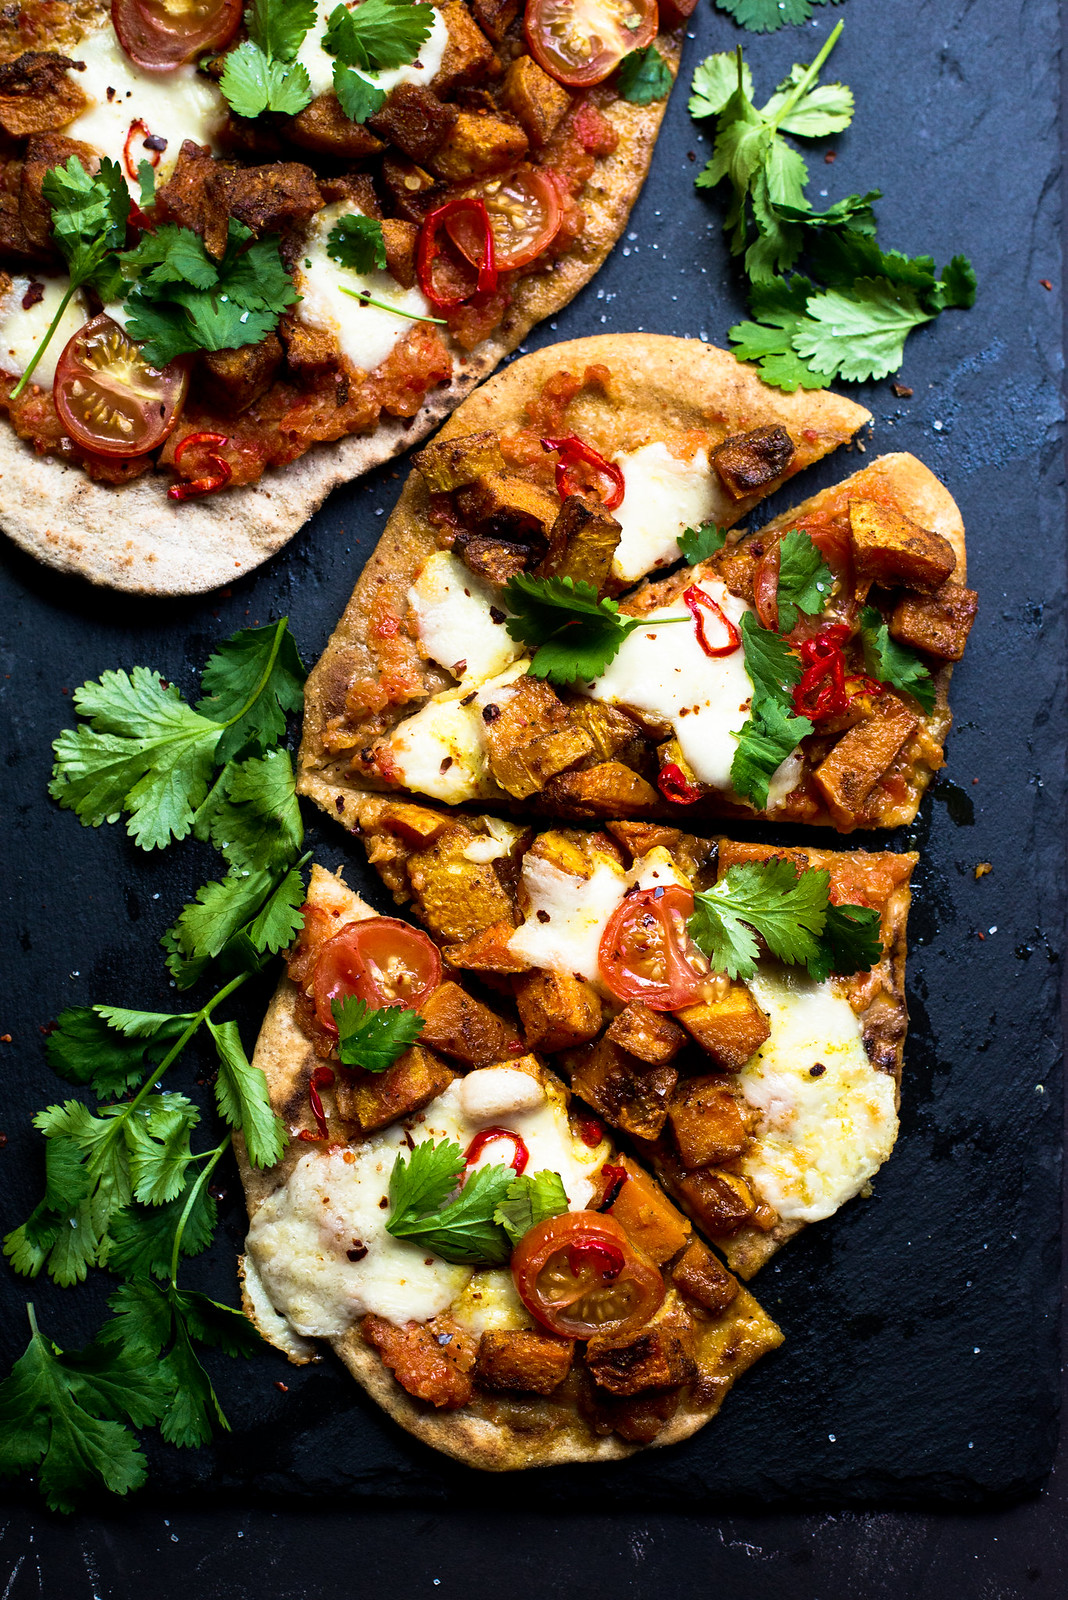 Indian Spiced Butternut Squash Naan Pizza #vegetarian #naanpizza #butternutsquash